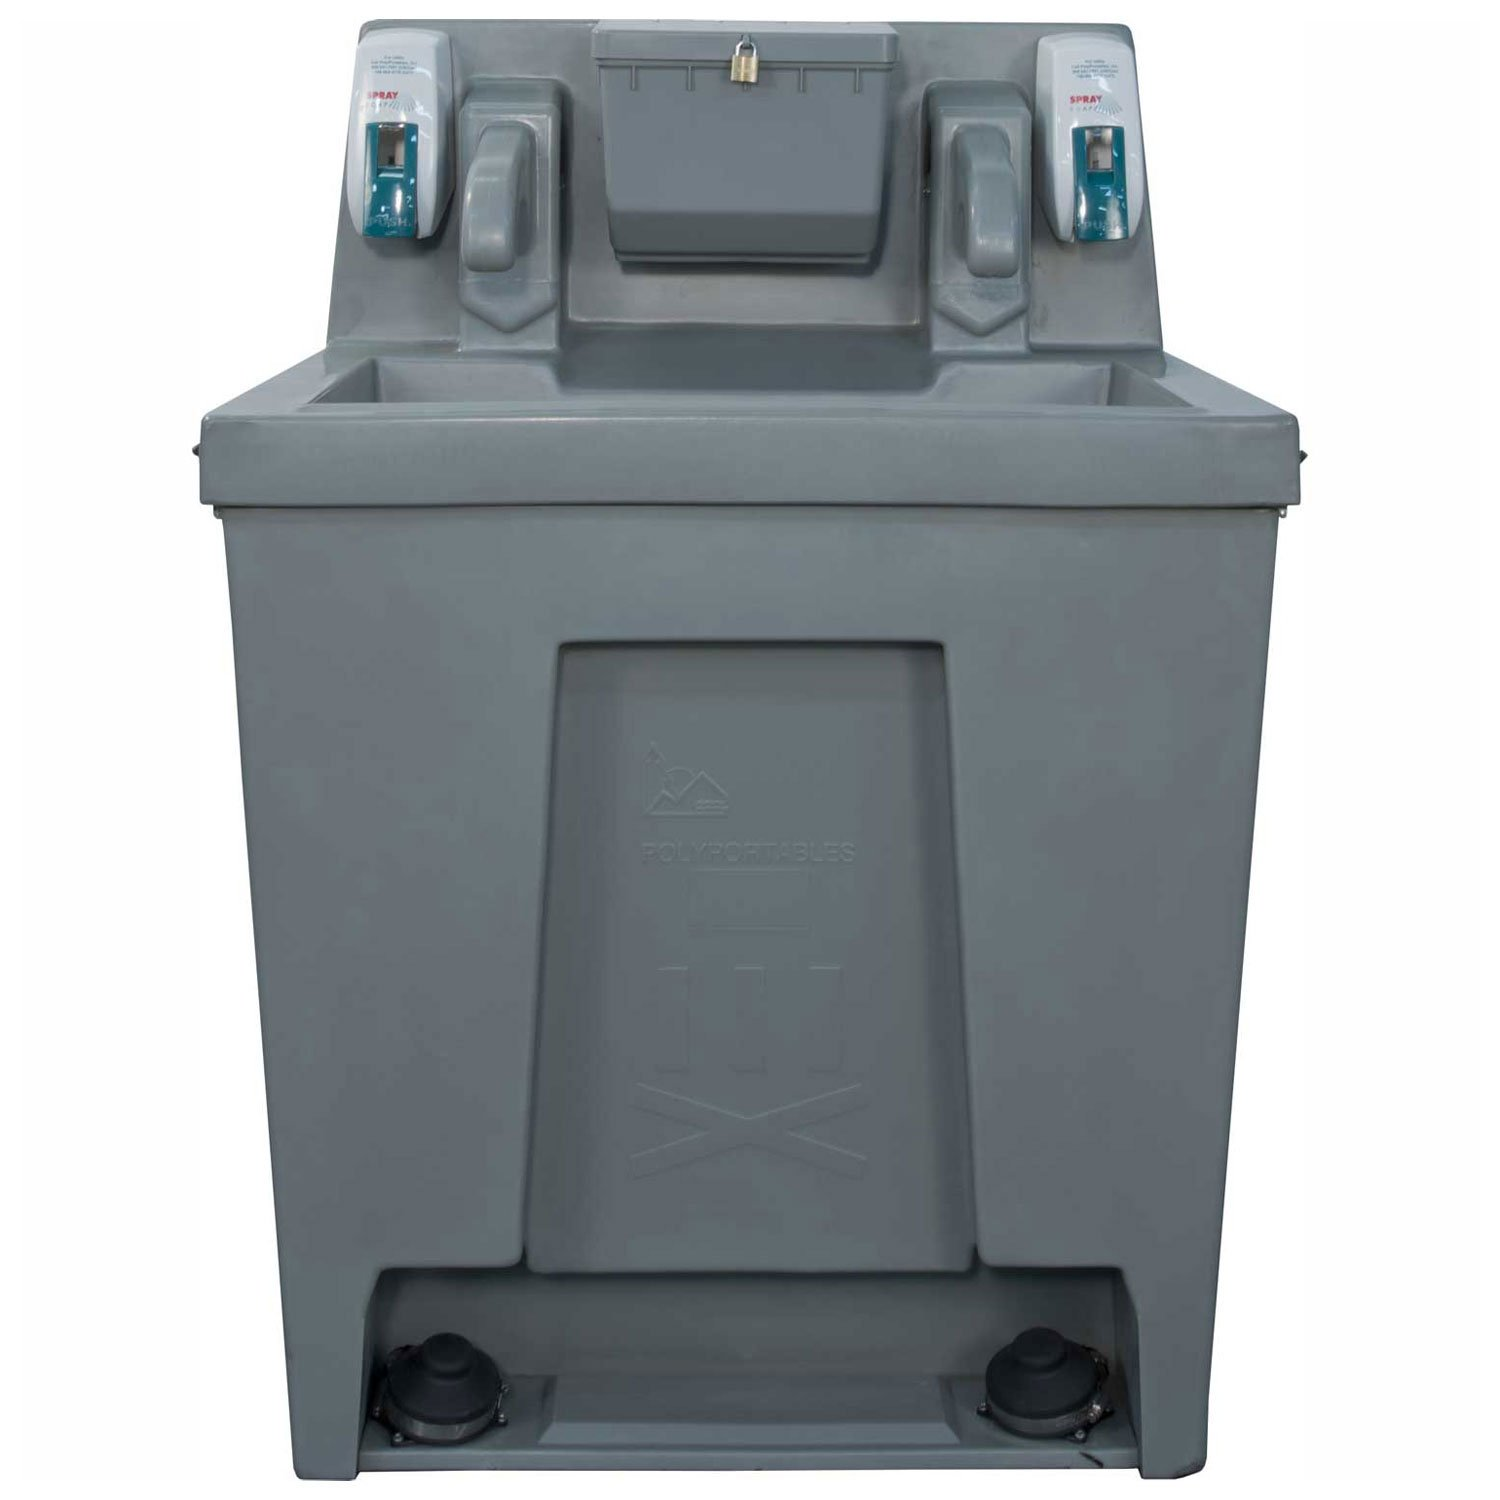 PolyPortables PPST-05, Super Twin Freestanding Hand Wash Station